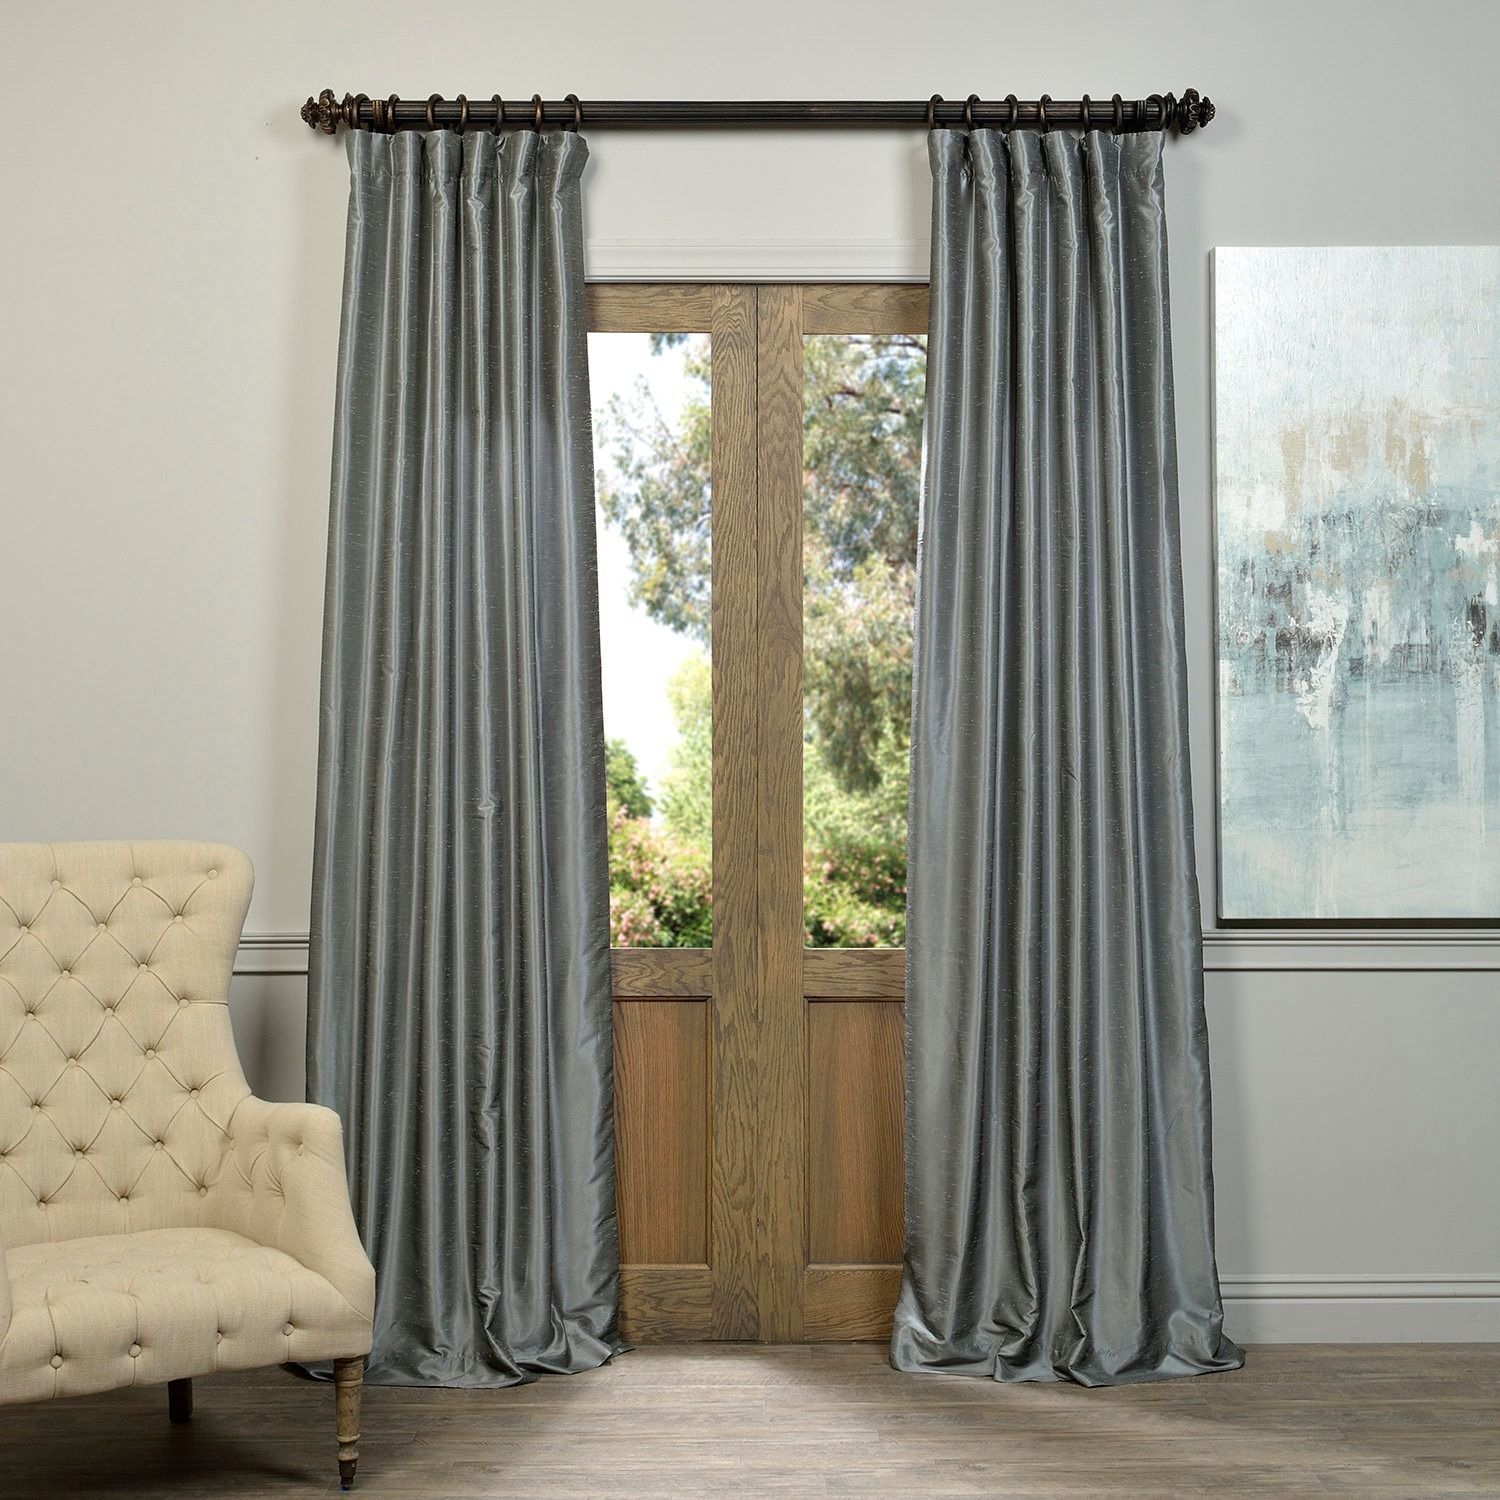 Exclusive Fabrics Storm Grey Vintage Faux Textured Dupioni Intended For Storm Grey Vintage Faux Textured Dupioni Single Silk Curtain Panels (View 12 of 30)